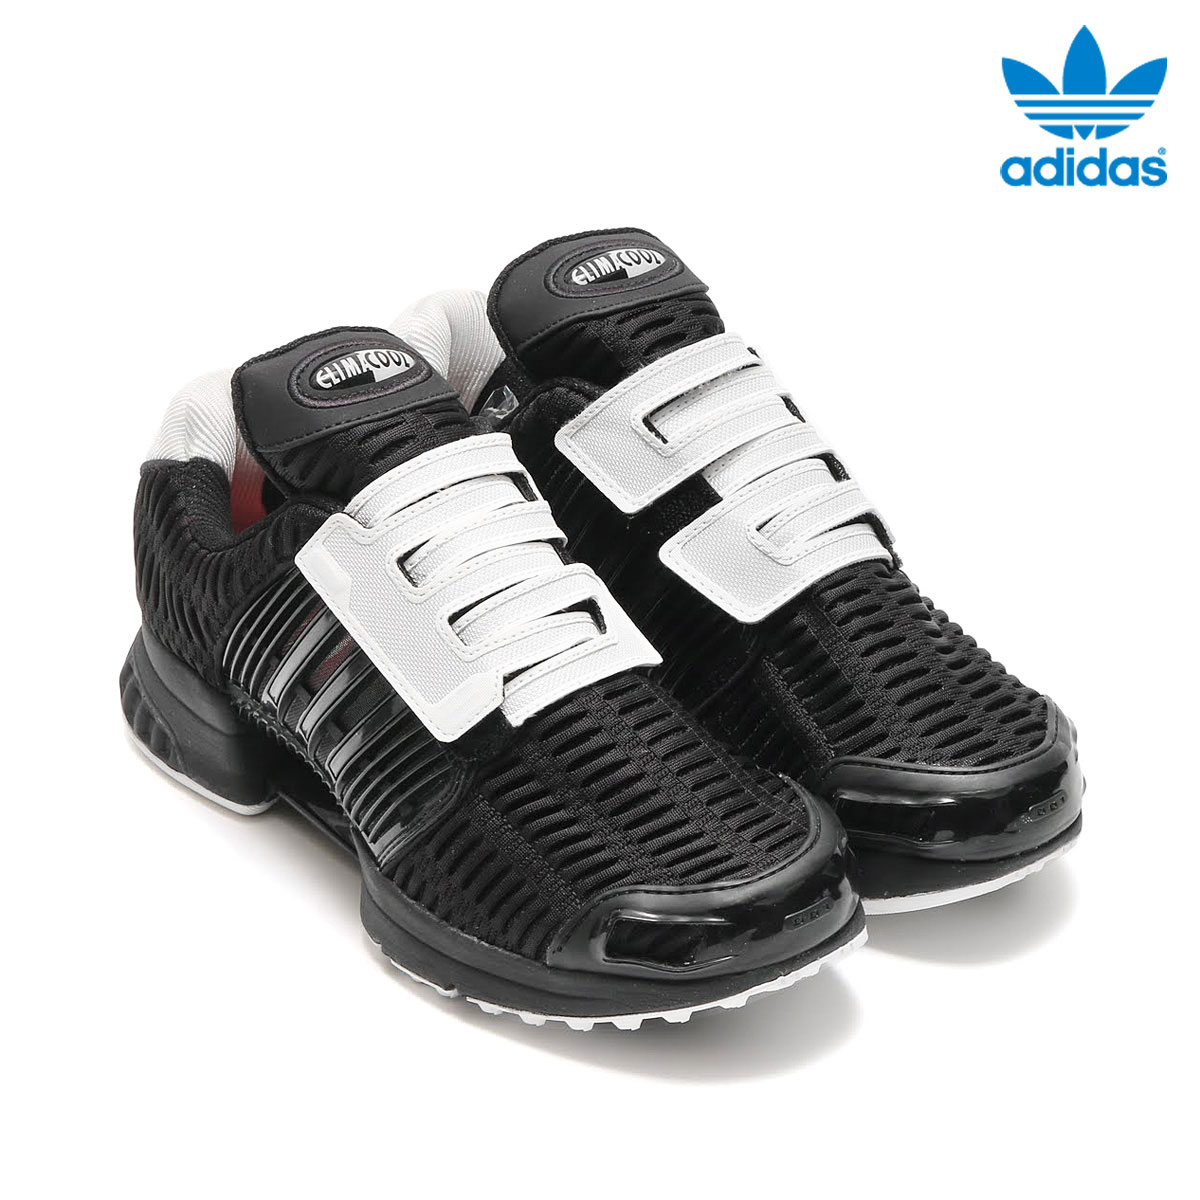 adidas Originals CLIMACOOL 1 CMF (アディダスクライマクール 1 CMF) (Core BlackCore BlackVintage White) 17SU S